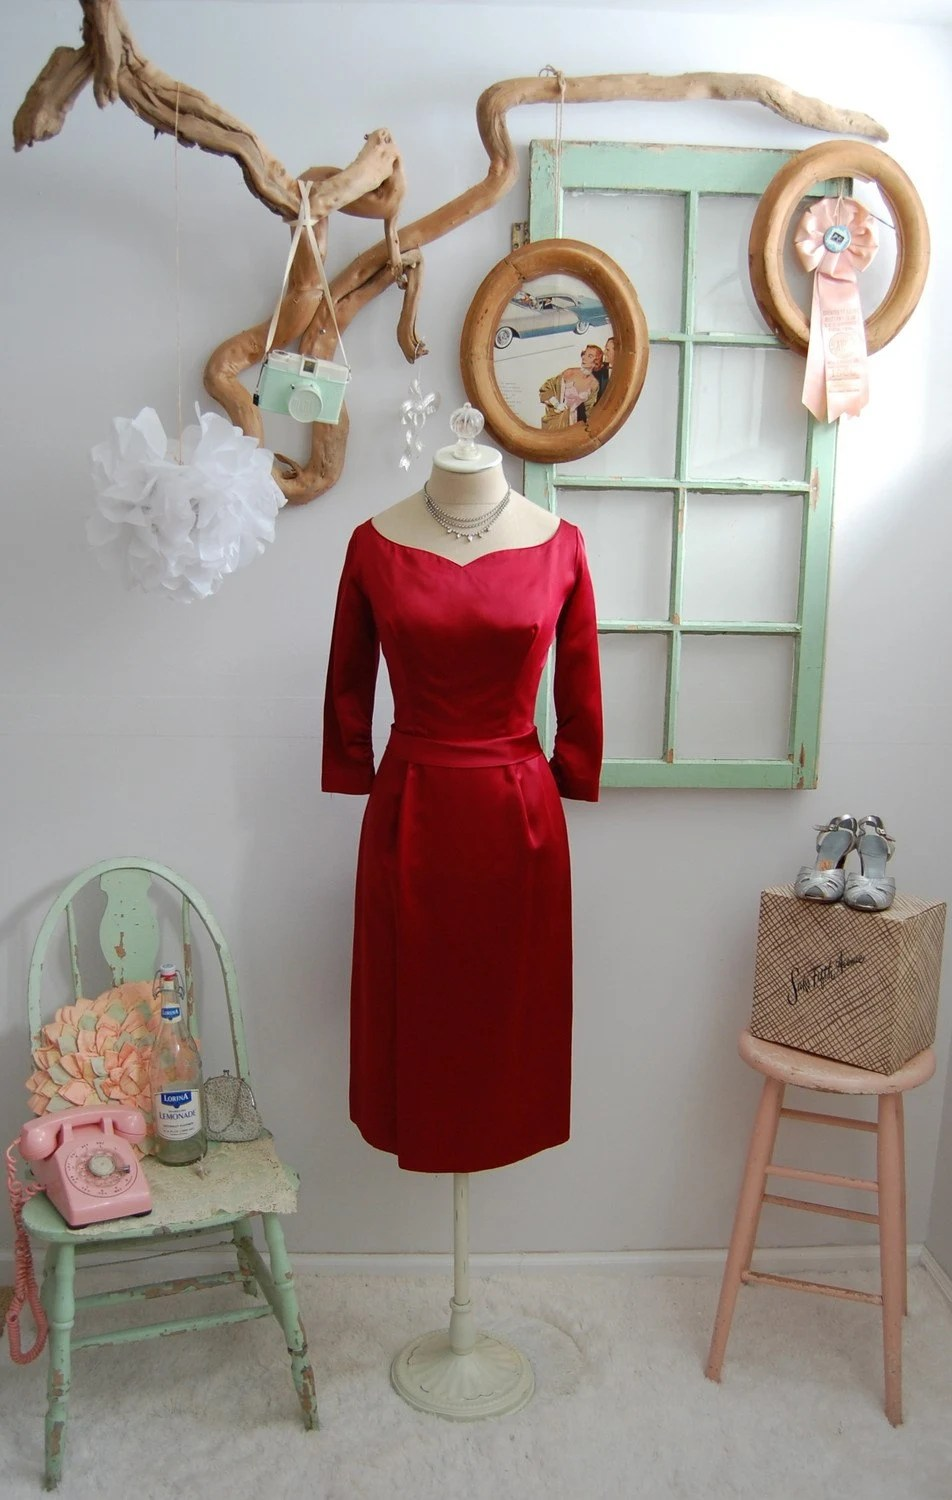 The Daphne- Vintage 1950s Red Satin Sweetheart Bustled Back Cocktail Dress Size Small